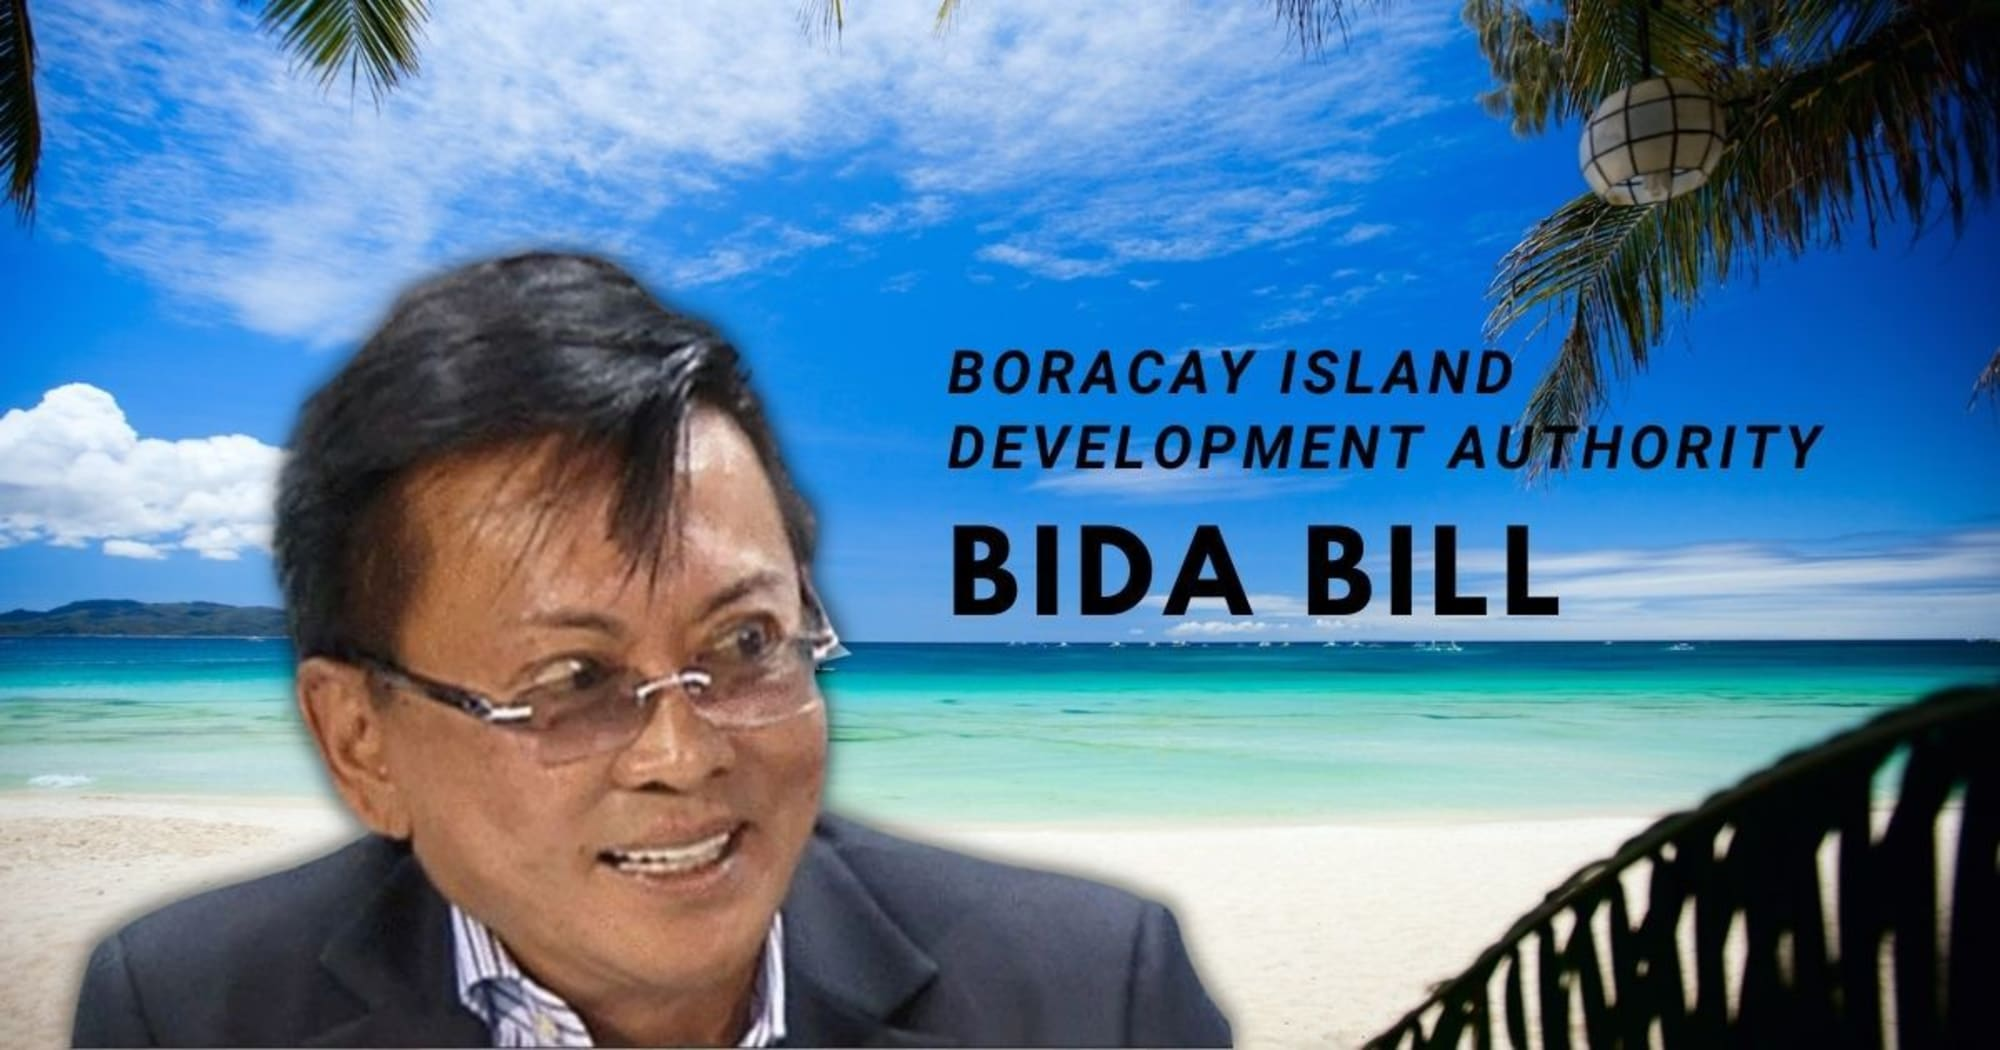 Aklan Rep lambasts fellow solons for 'sucking up' to Duterte over BIDA bill